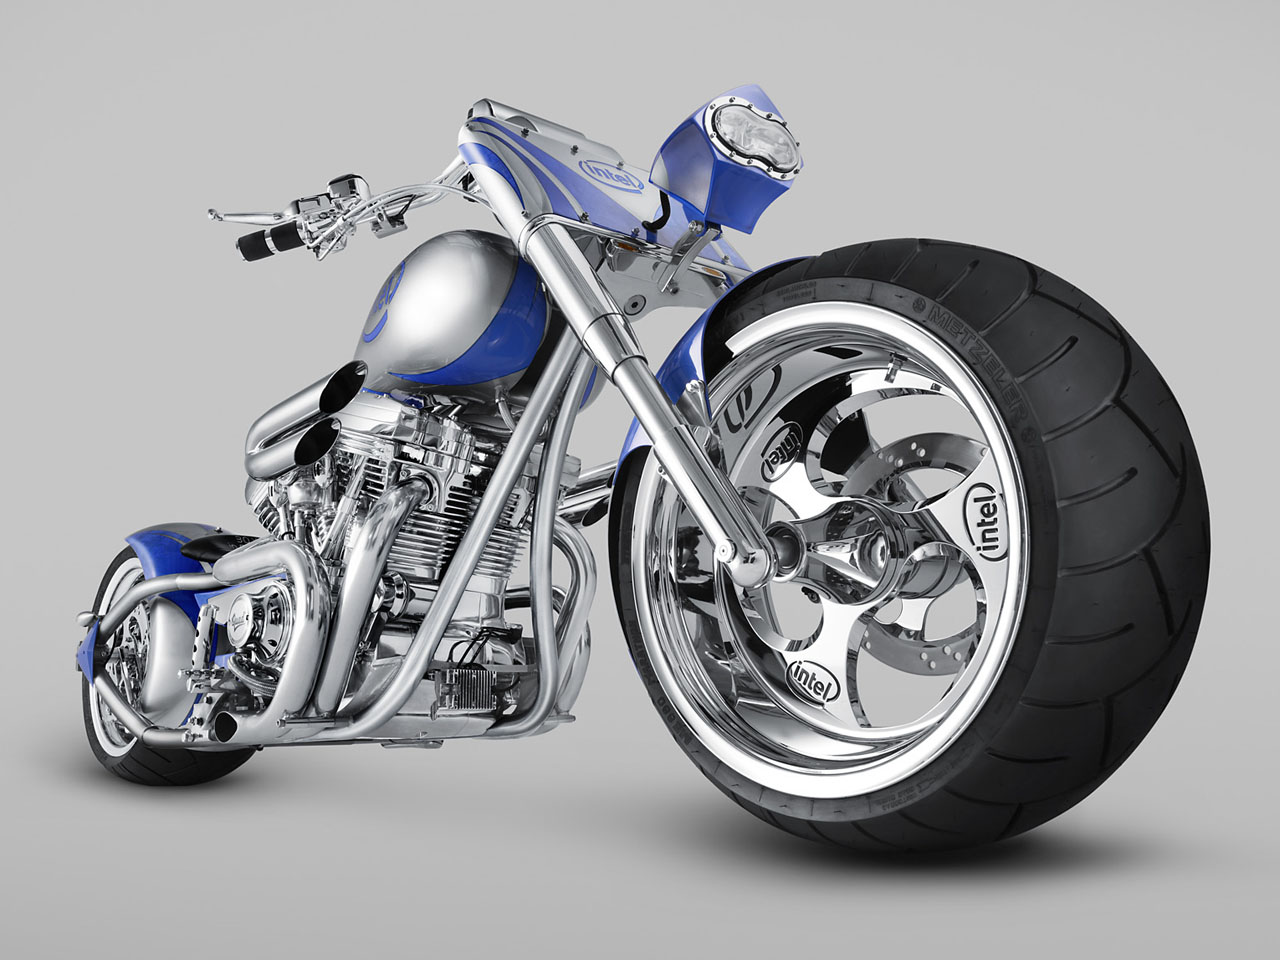 The Most Powerful and Technologically Advanced Intel Bike 1280x960